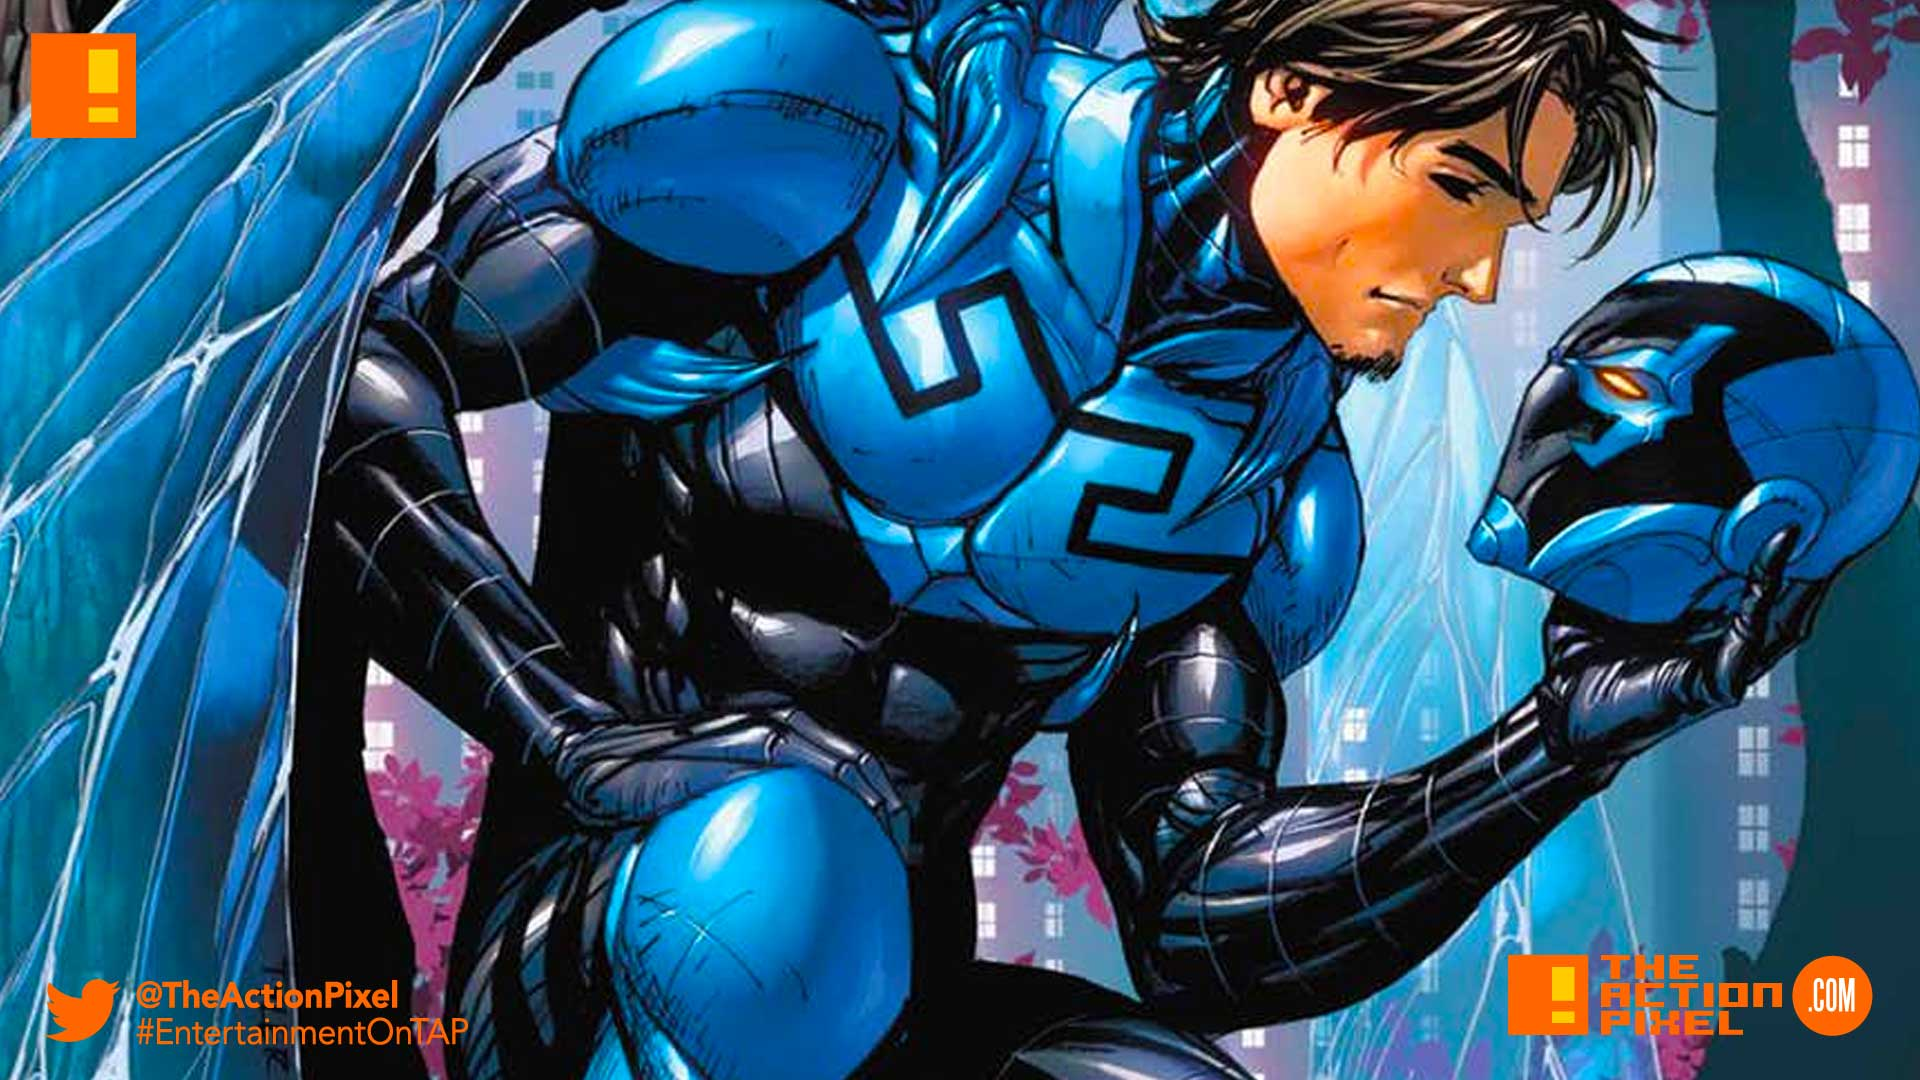 blue beetle, comics, dc comics, warner bros pictures, wb picture, warner bros. , jamie reyes, latino, mexican-american